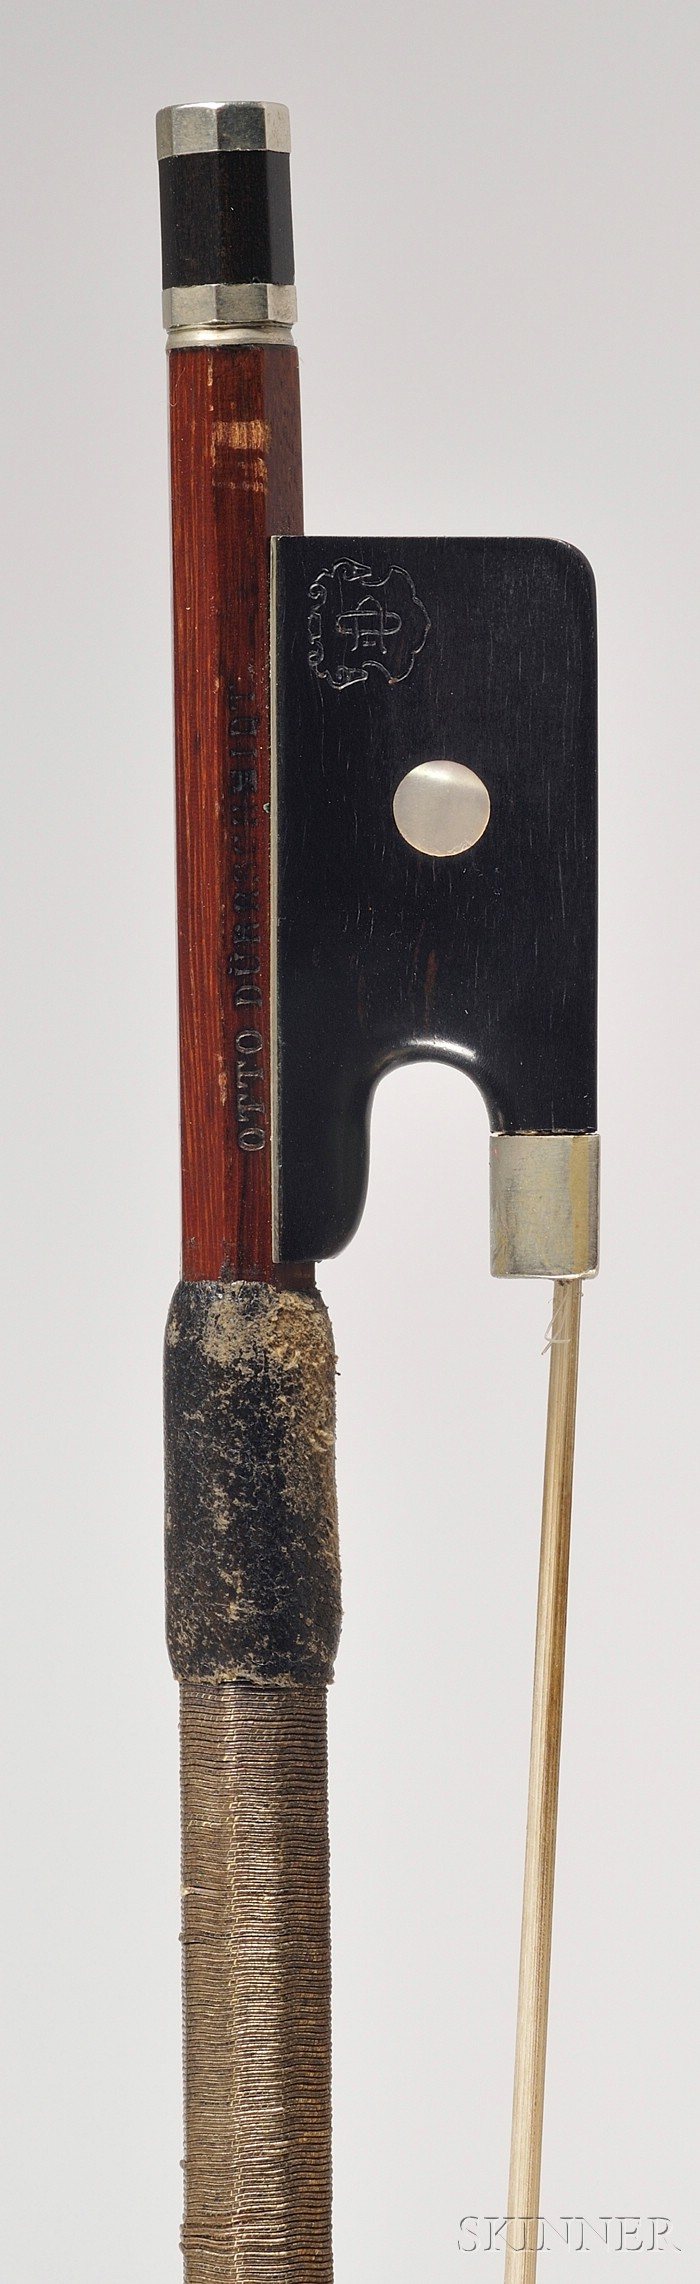 Silver Mounted Violin Bow, Otto Durrschmidt